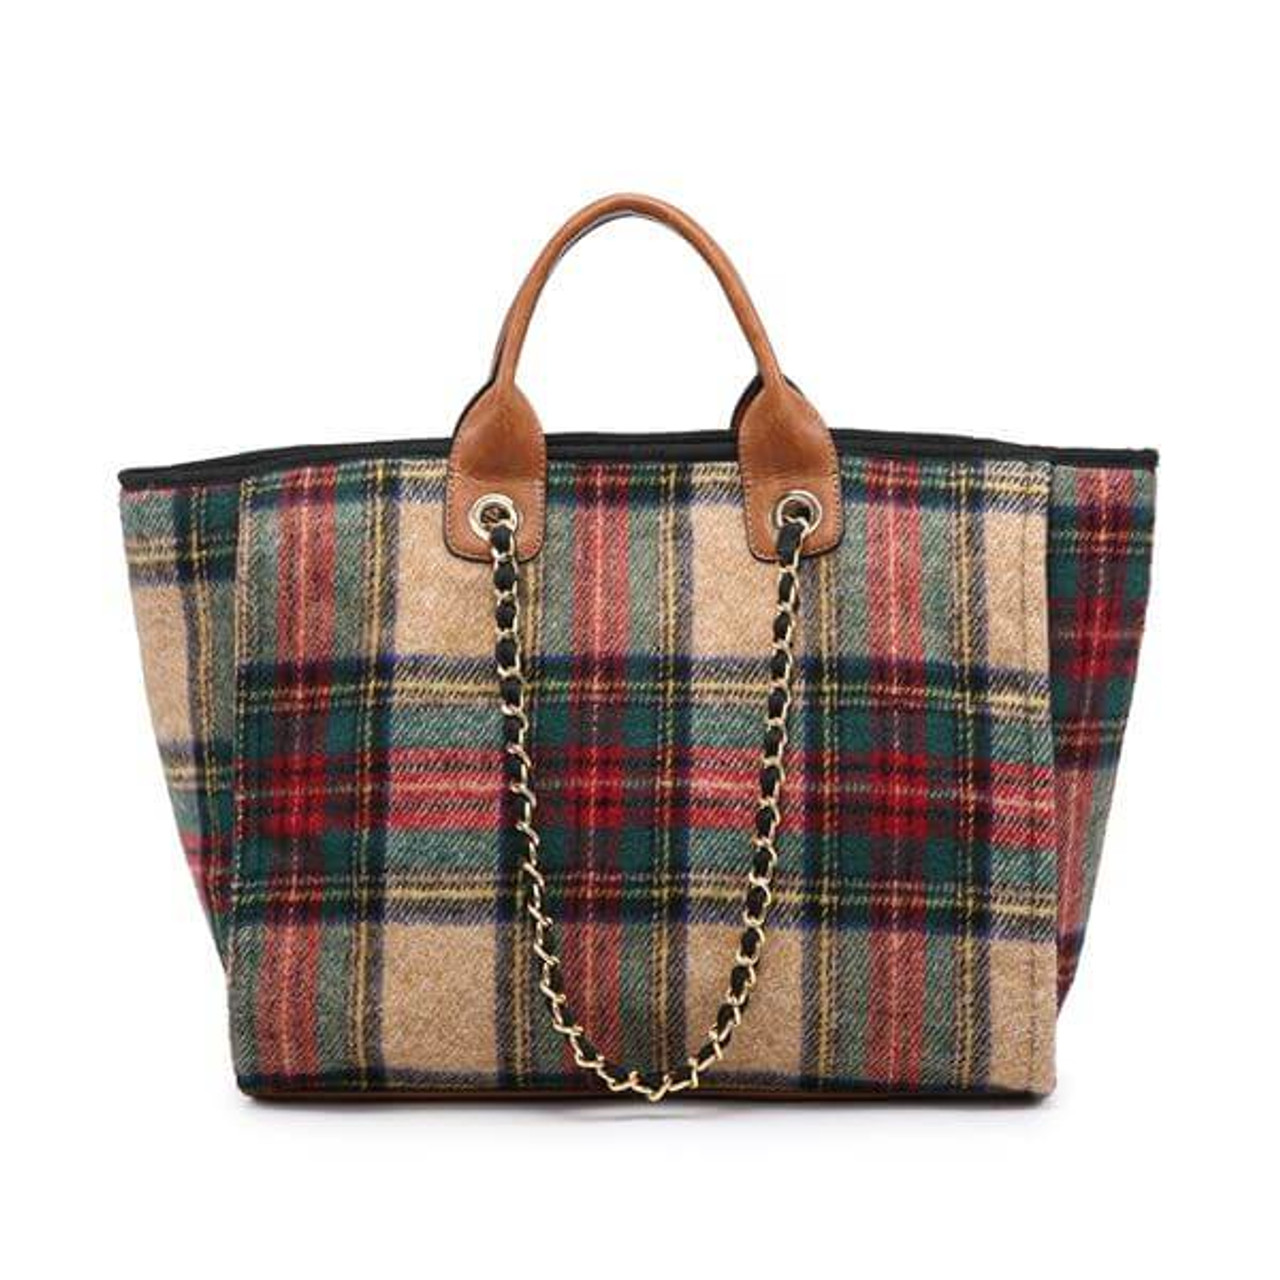 Classic multi-color plaid tote with vegan leather details